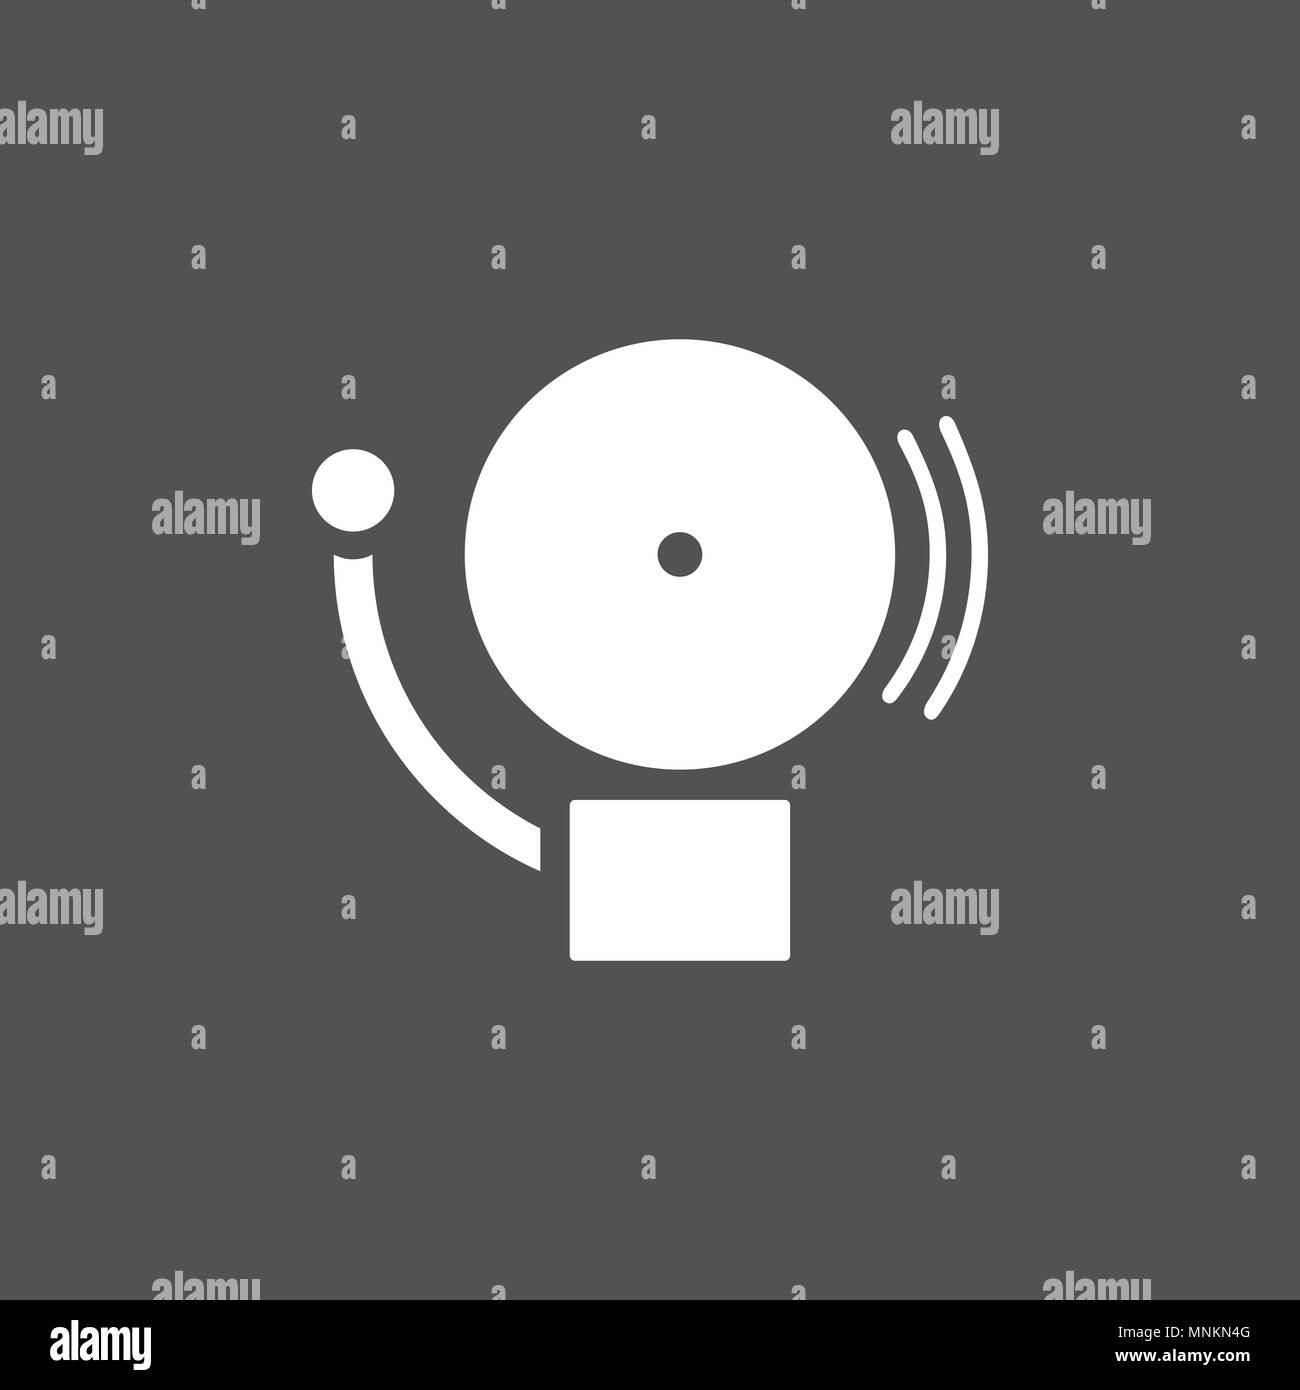 Alarm icon on a dark background. Vector illustration - Stock Image